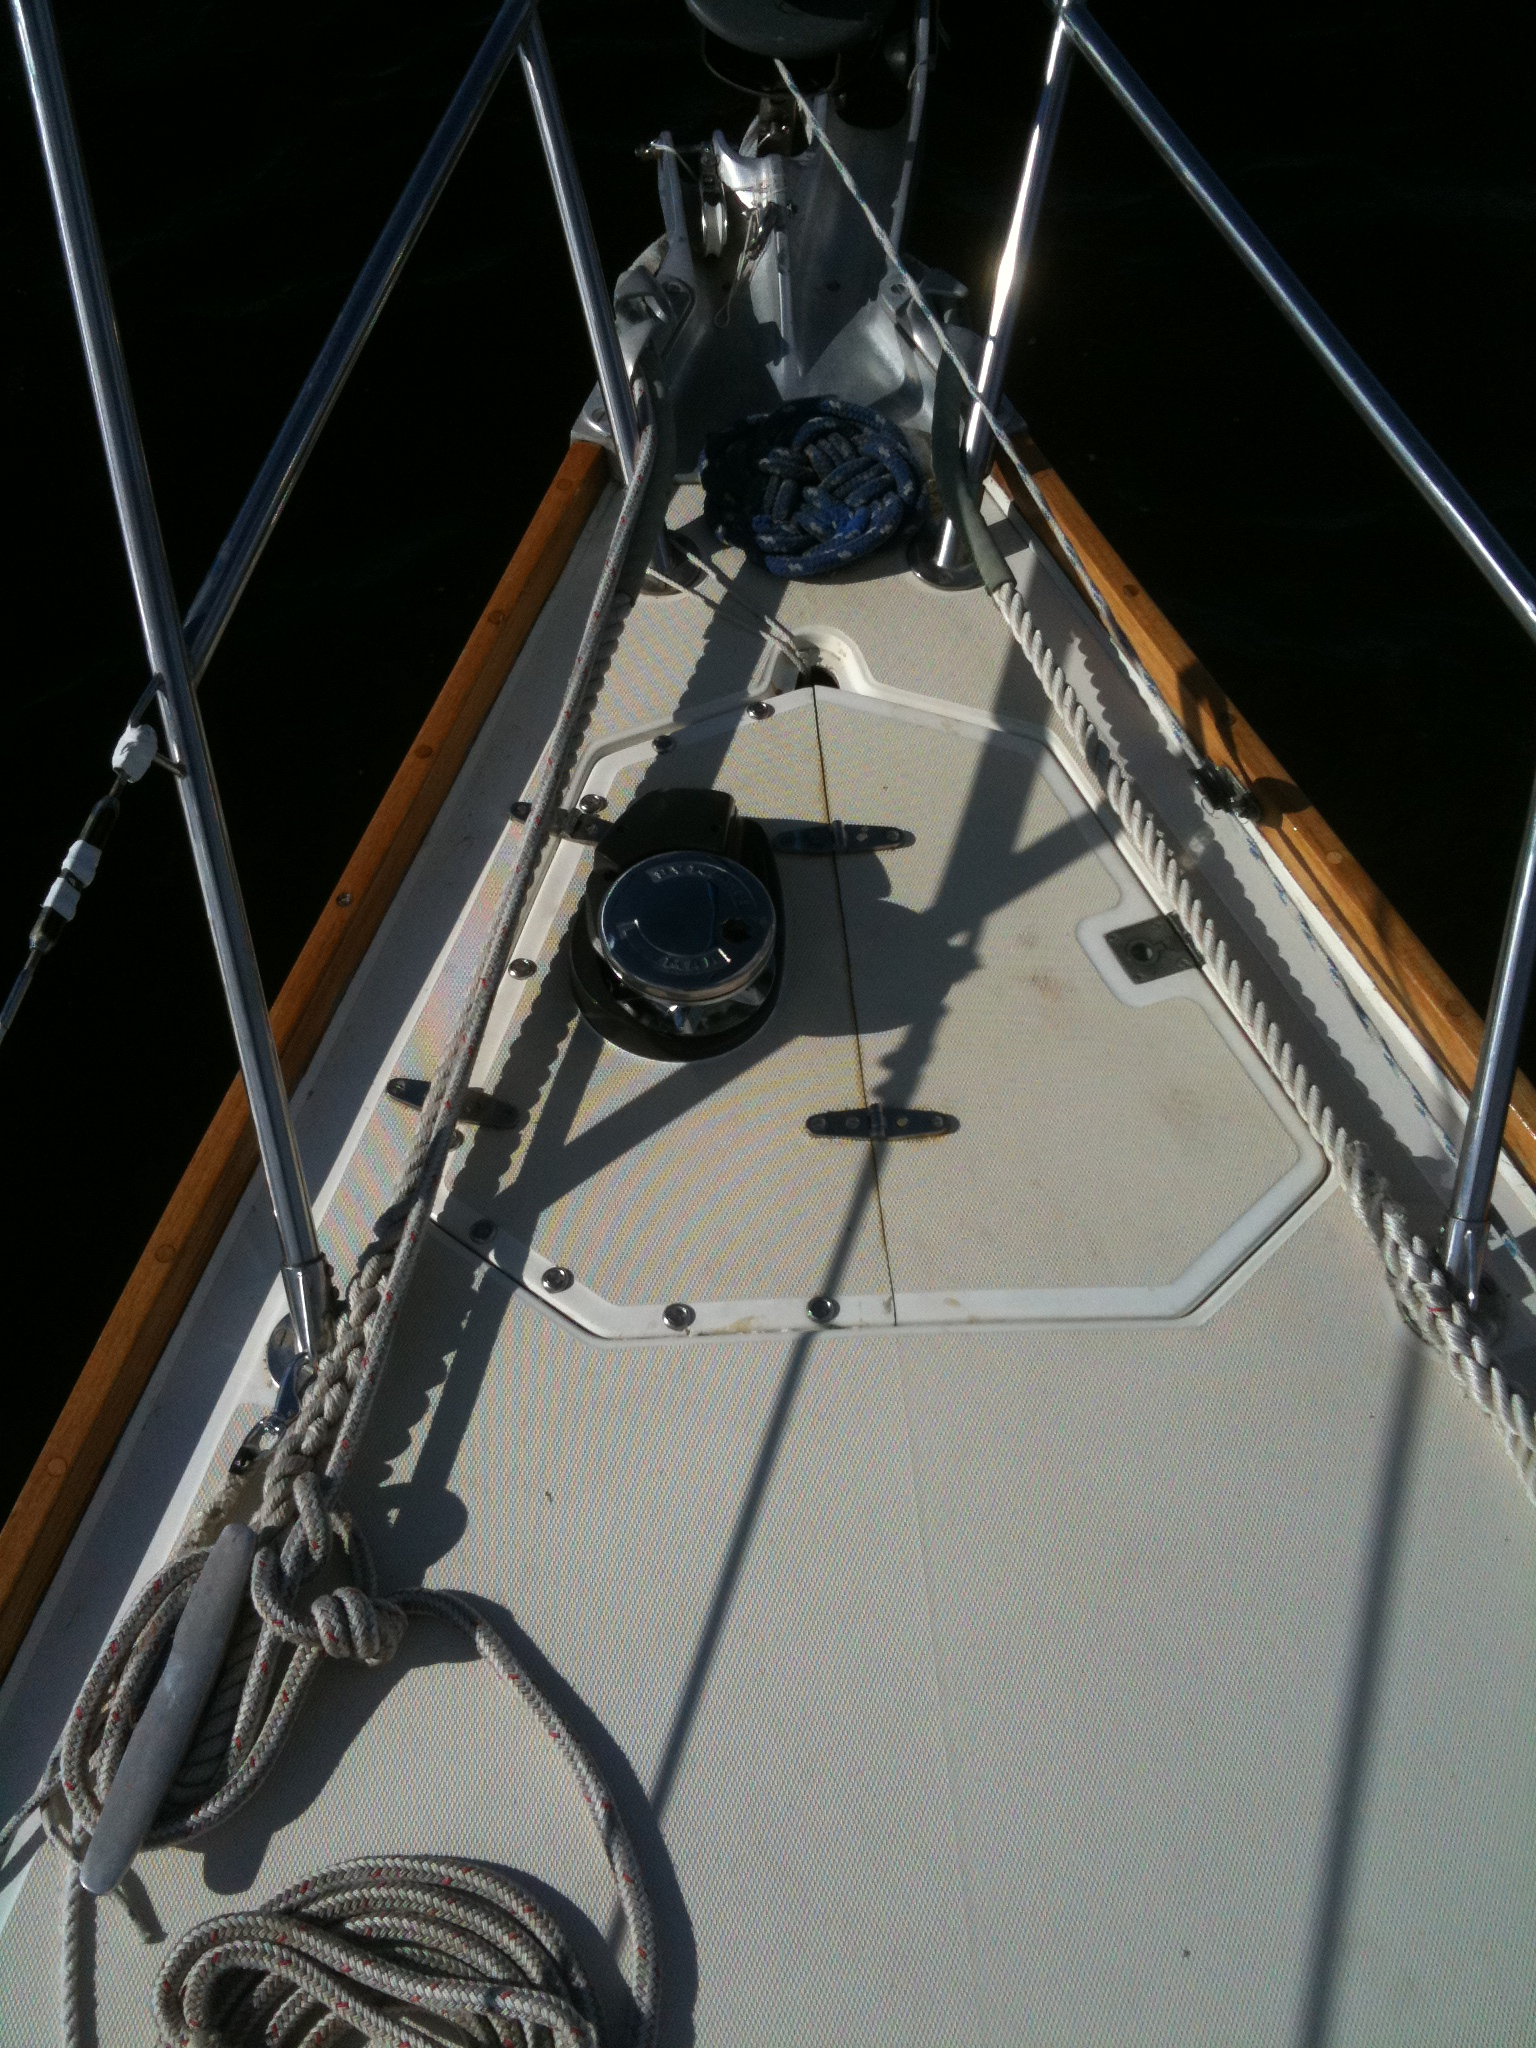 Bow and steam head shown in this photo